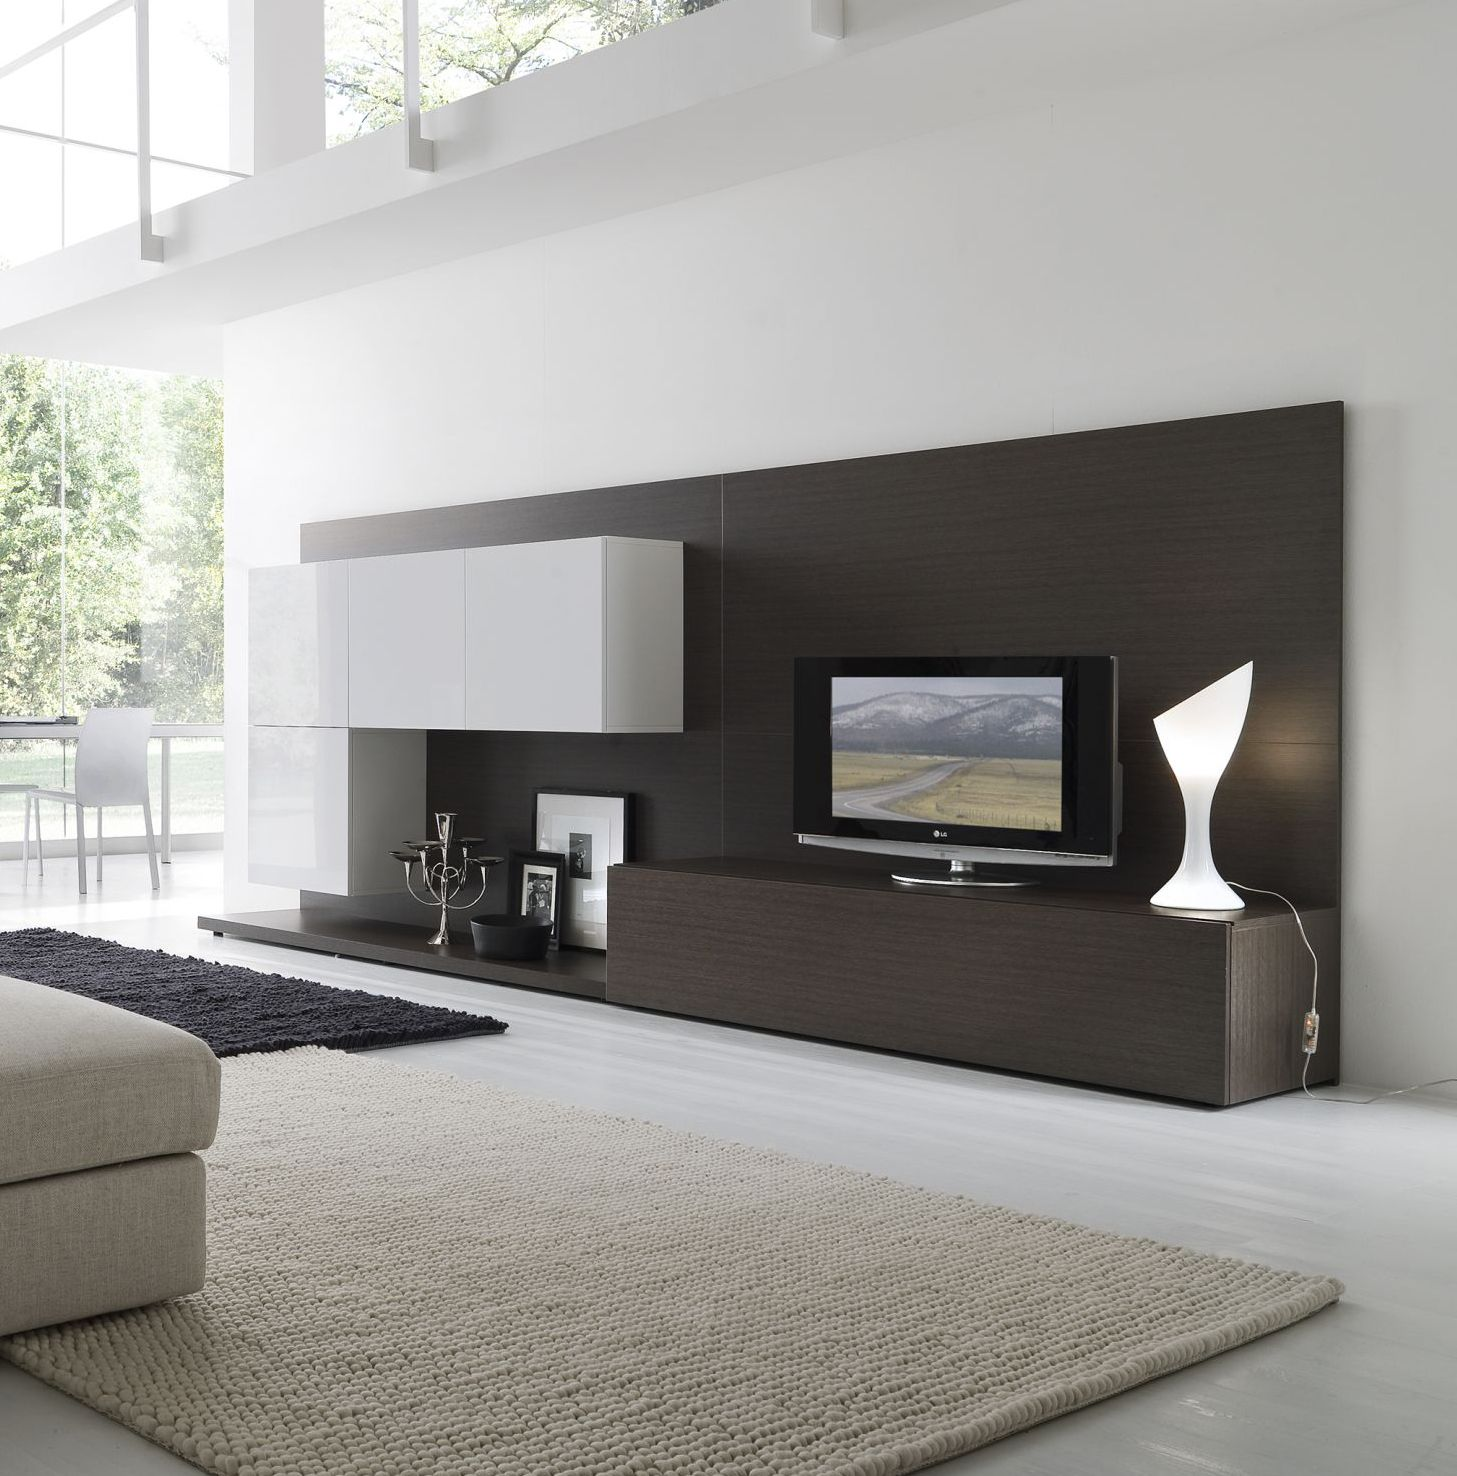 Interior Design For Living Room Walls Http Abnancom Wp Content Uploads 2012 07 Modern Living Room